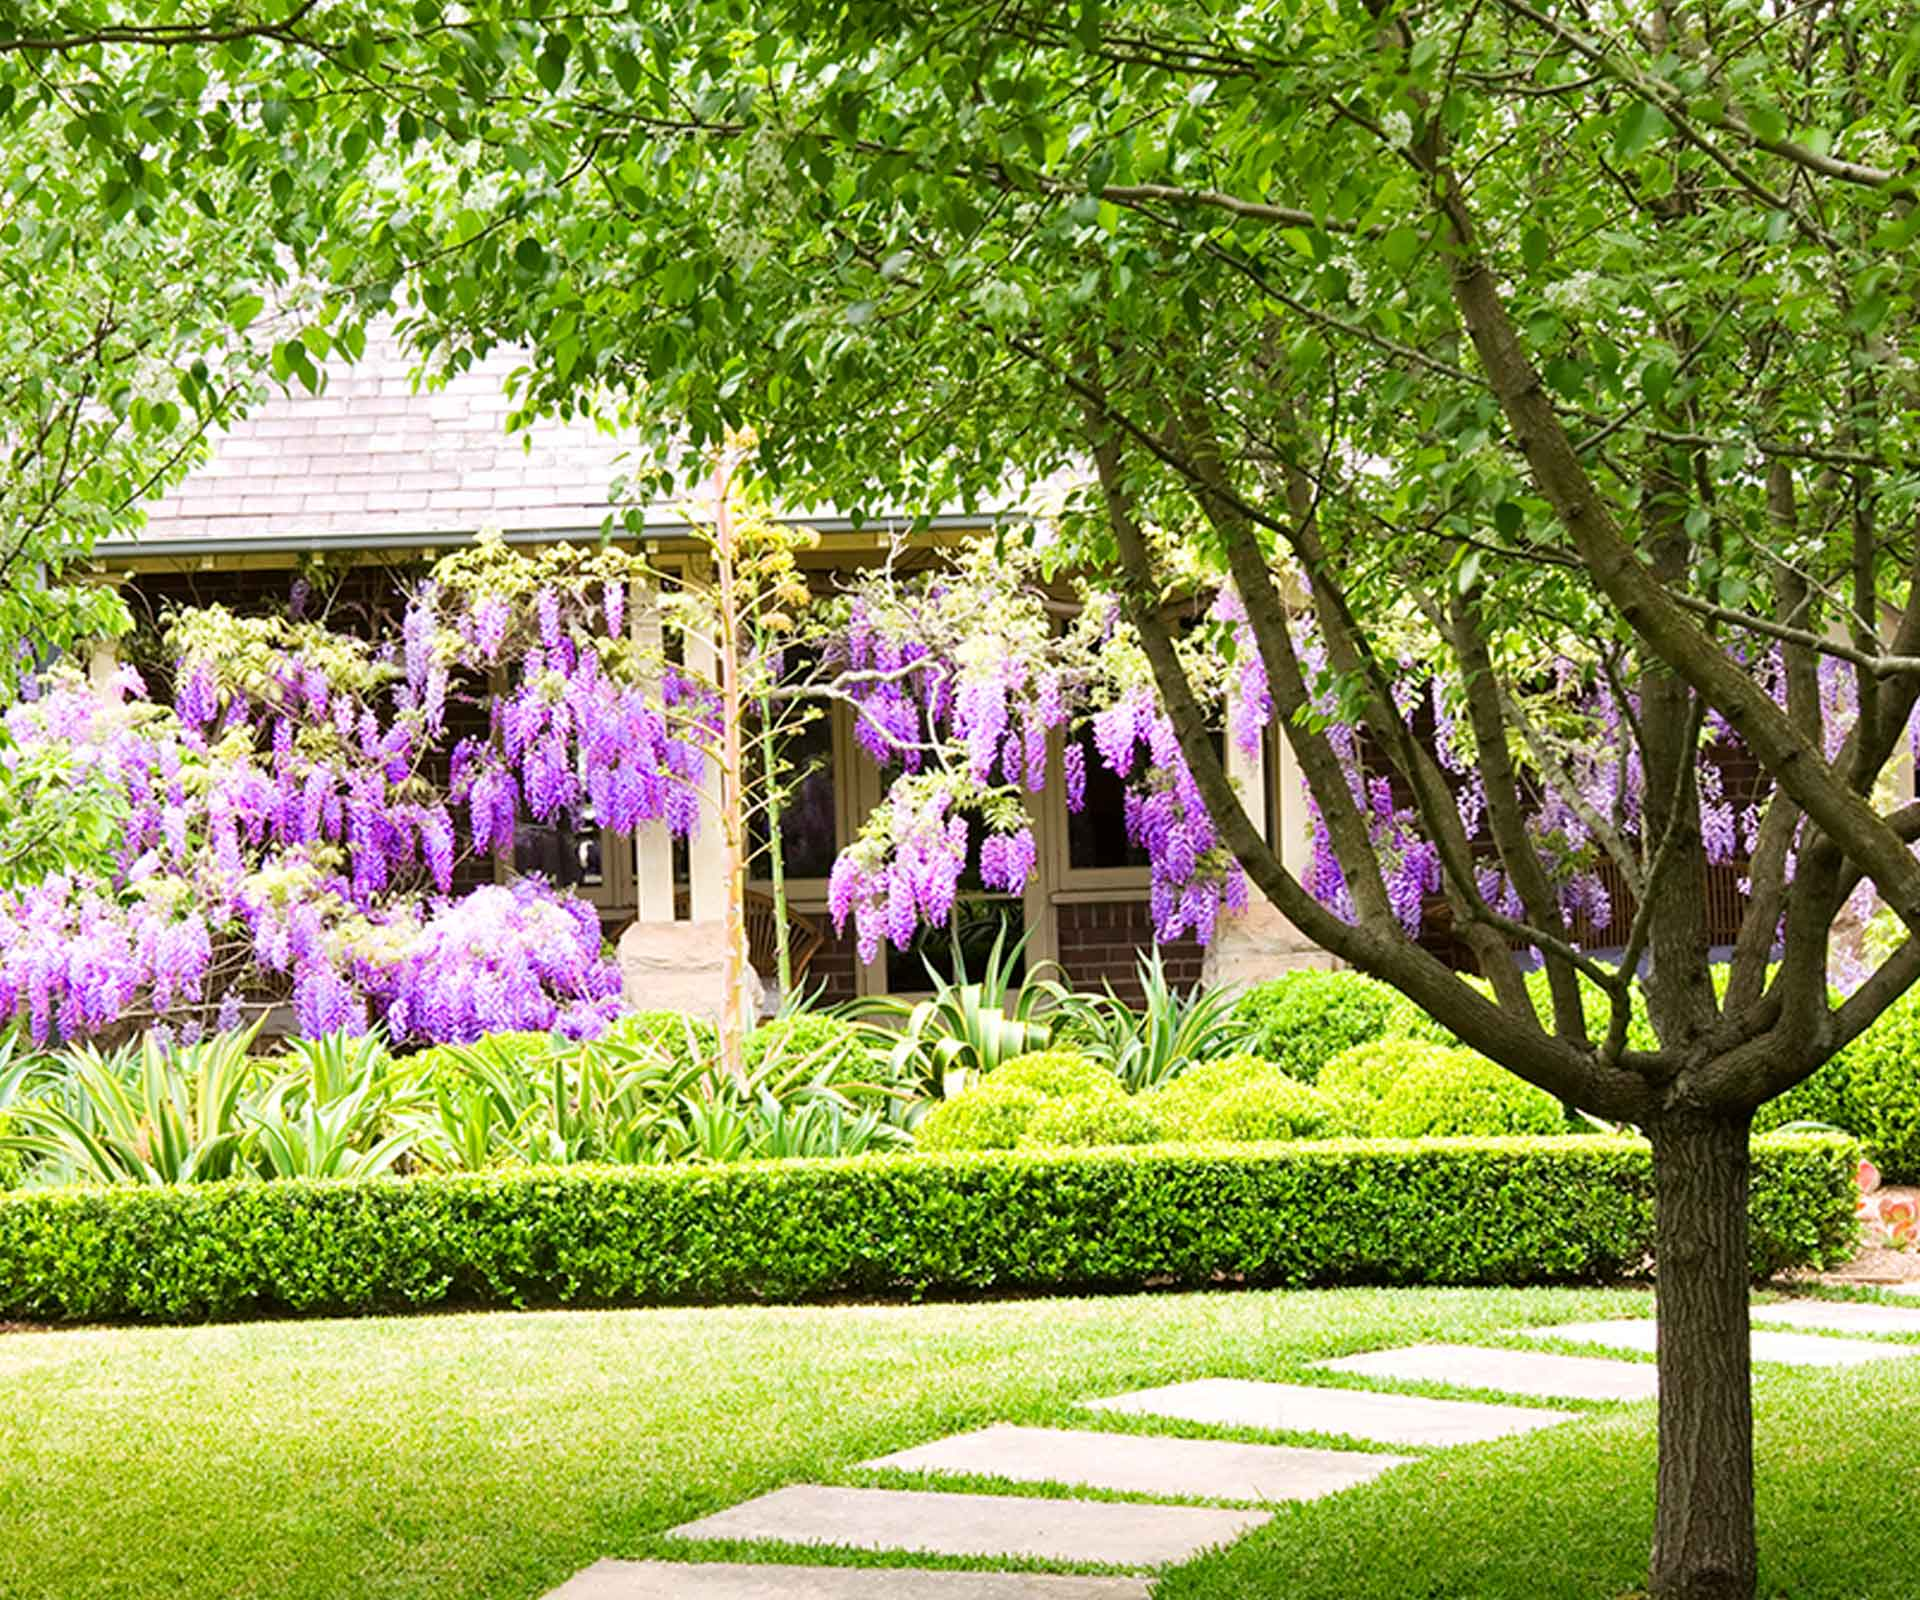 Wisteria plant guide: Types, climate and pruning